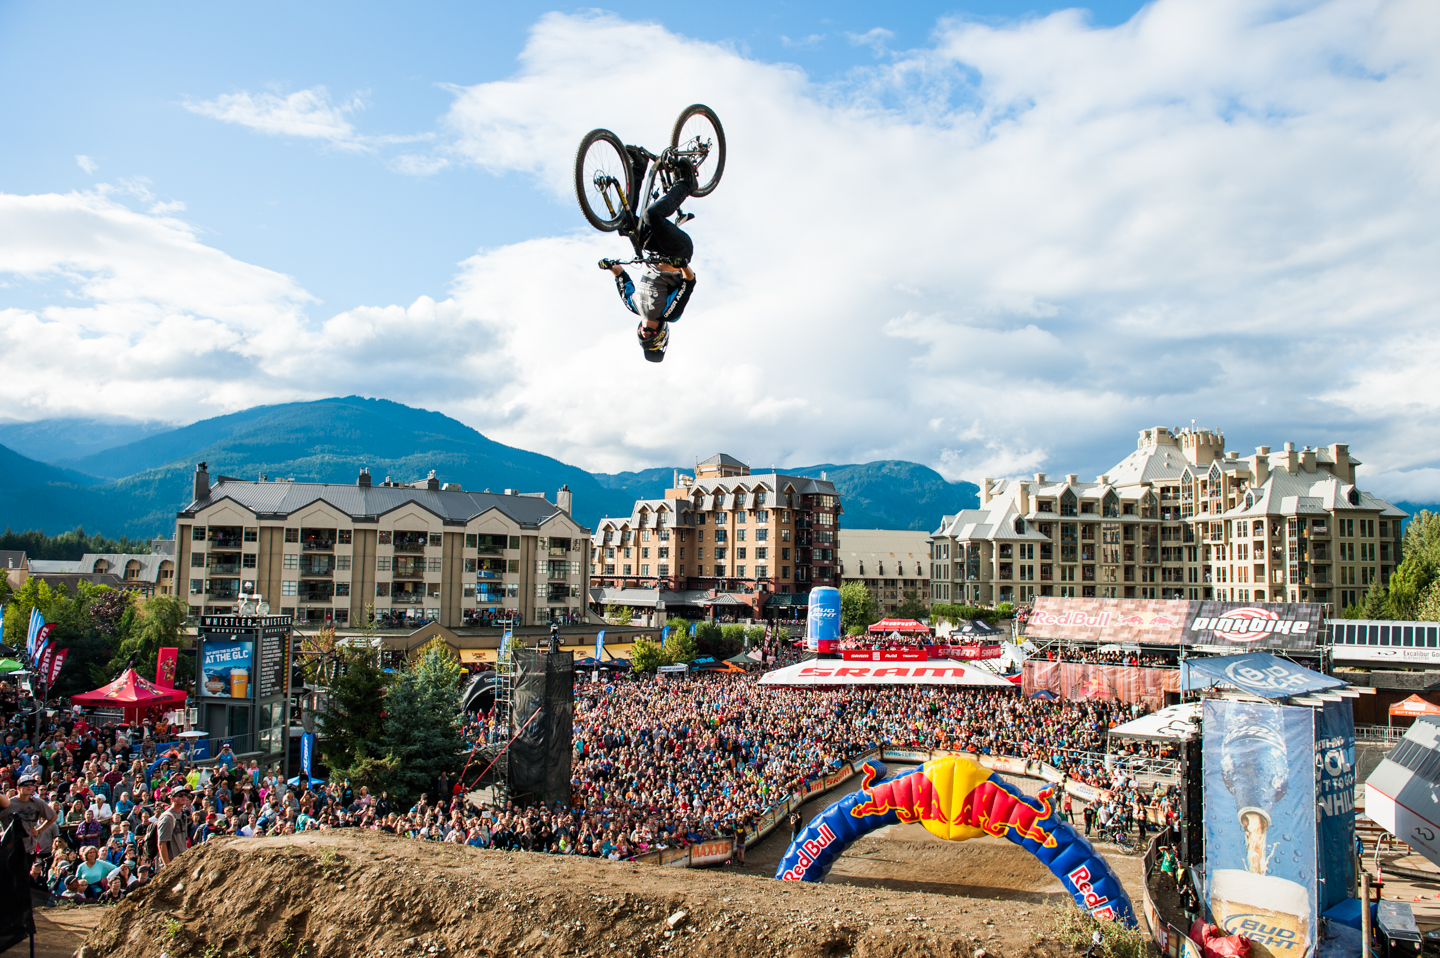 Kurt Sorge performs at Red Bull Joyride 2013 at Crankworx in Whistler, Canada on the 17th of August, 2013.